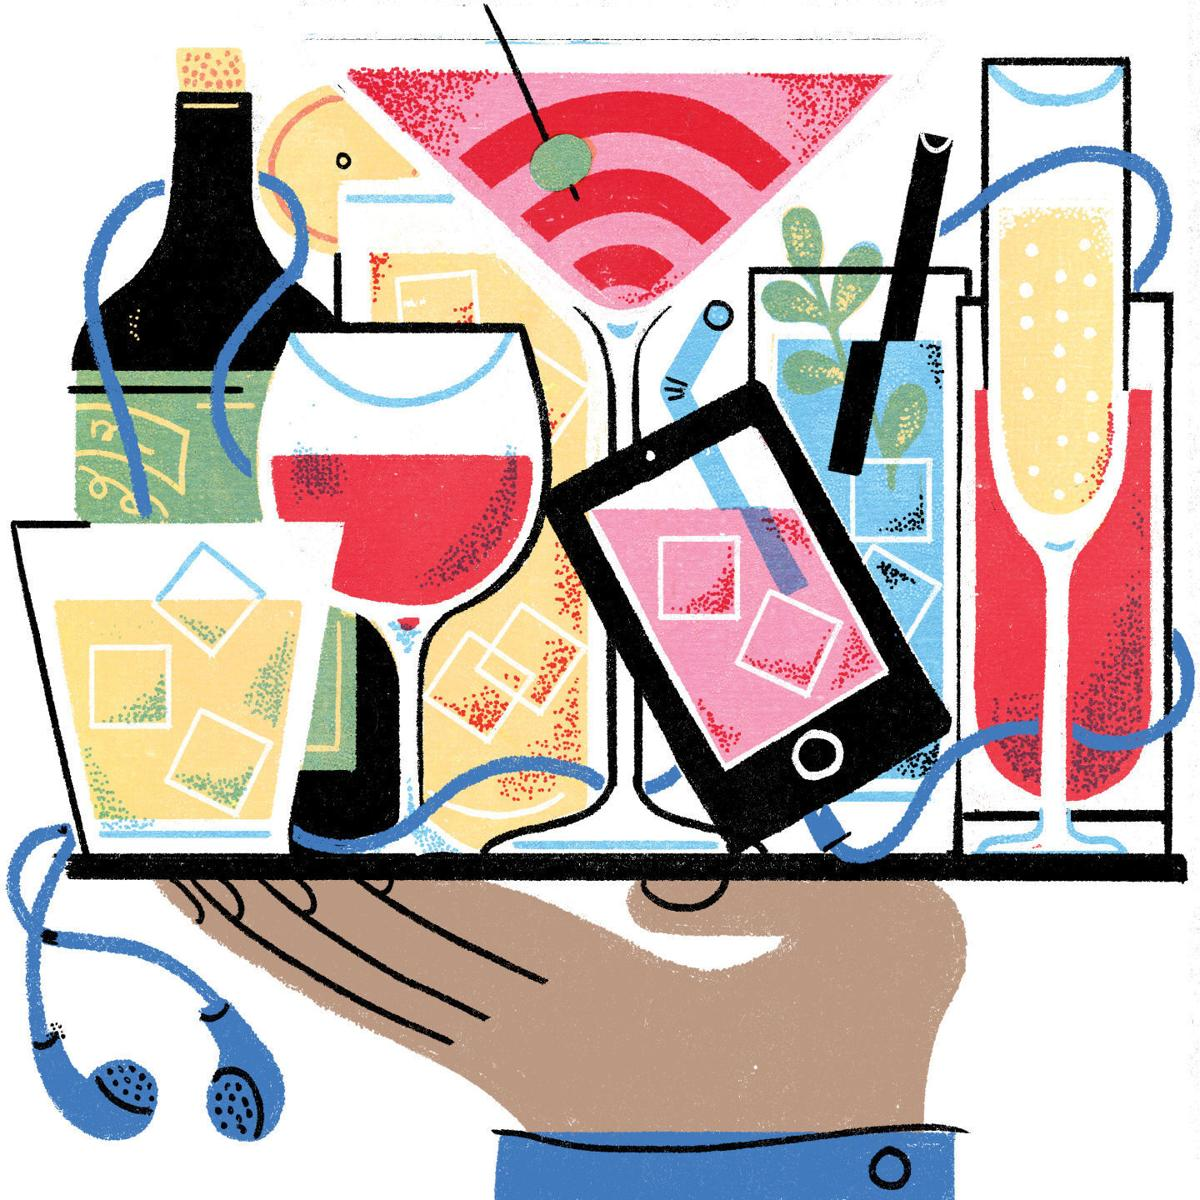 Shaken and Stirred - podcasts about cocktails, wines and to-go drinks